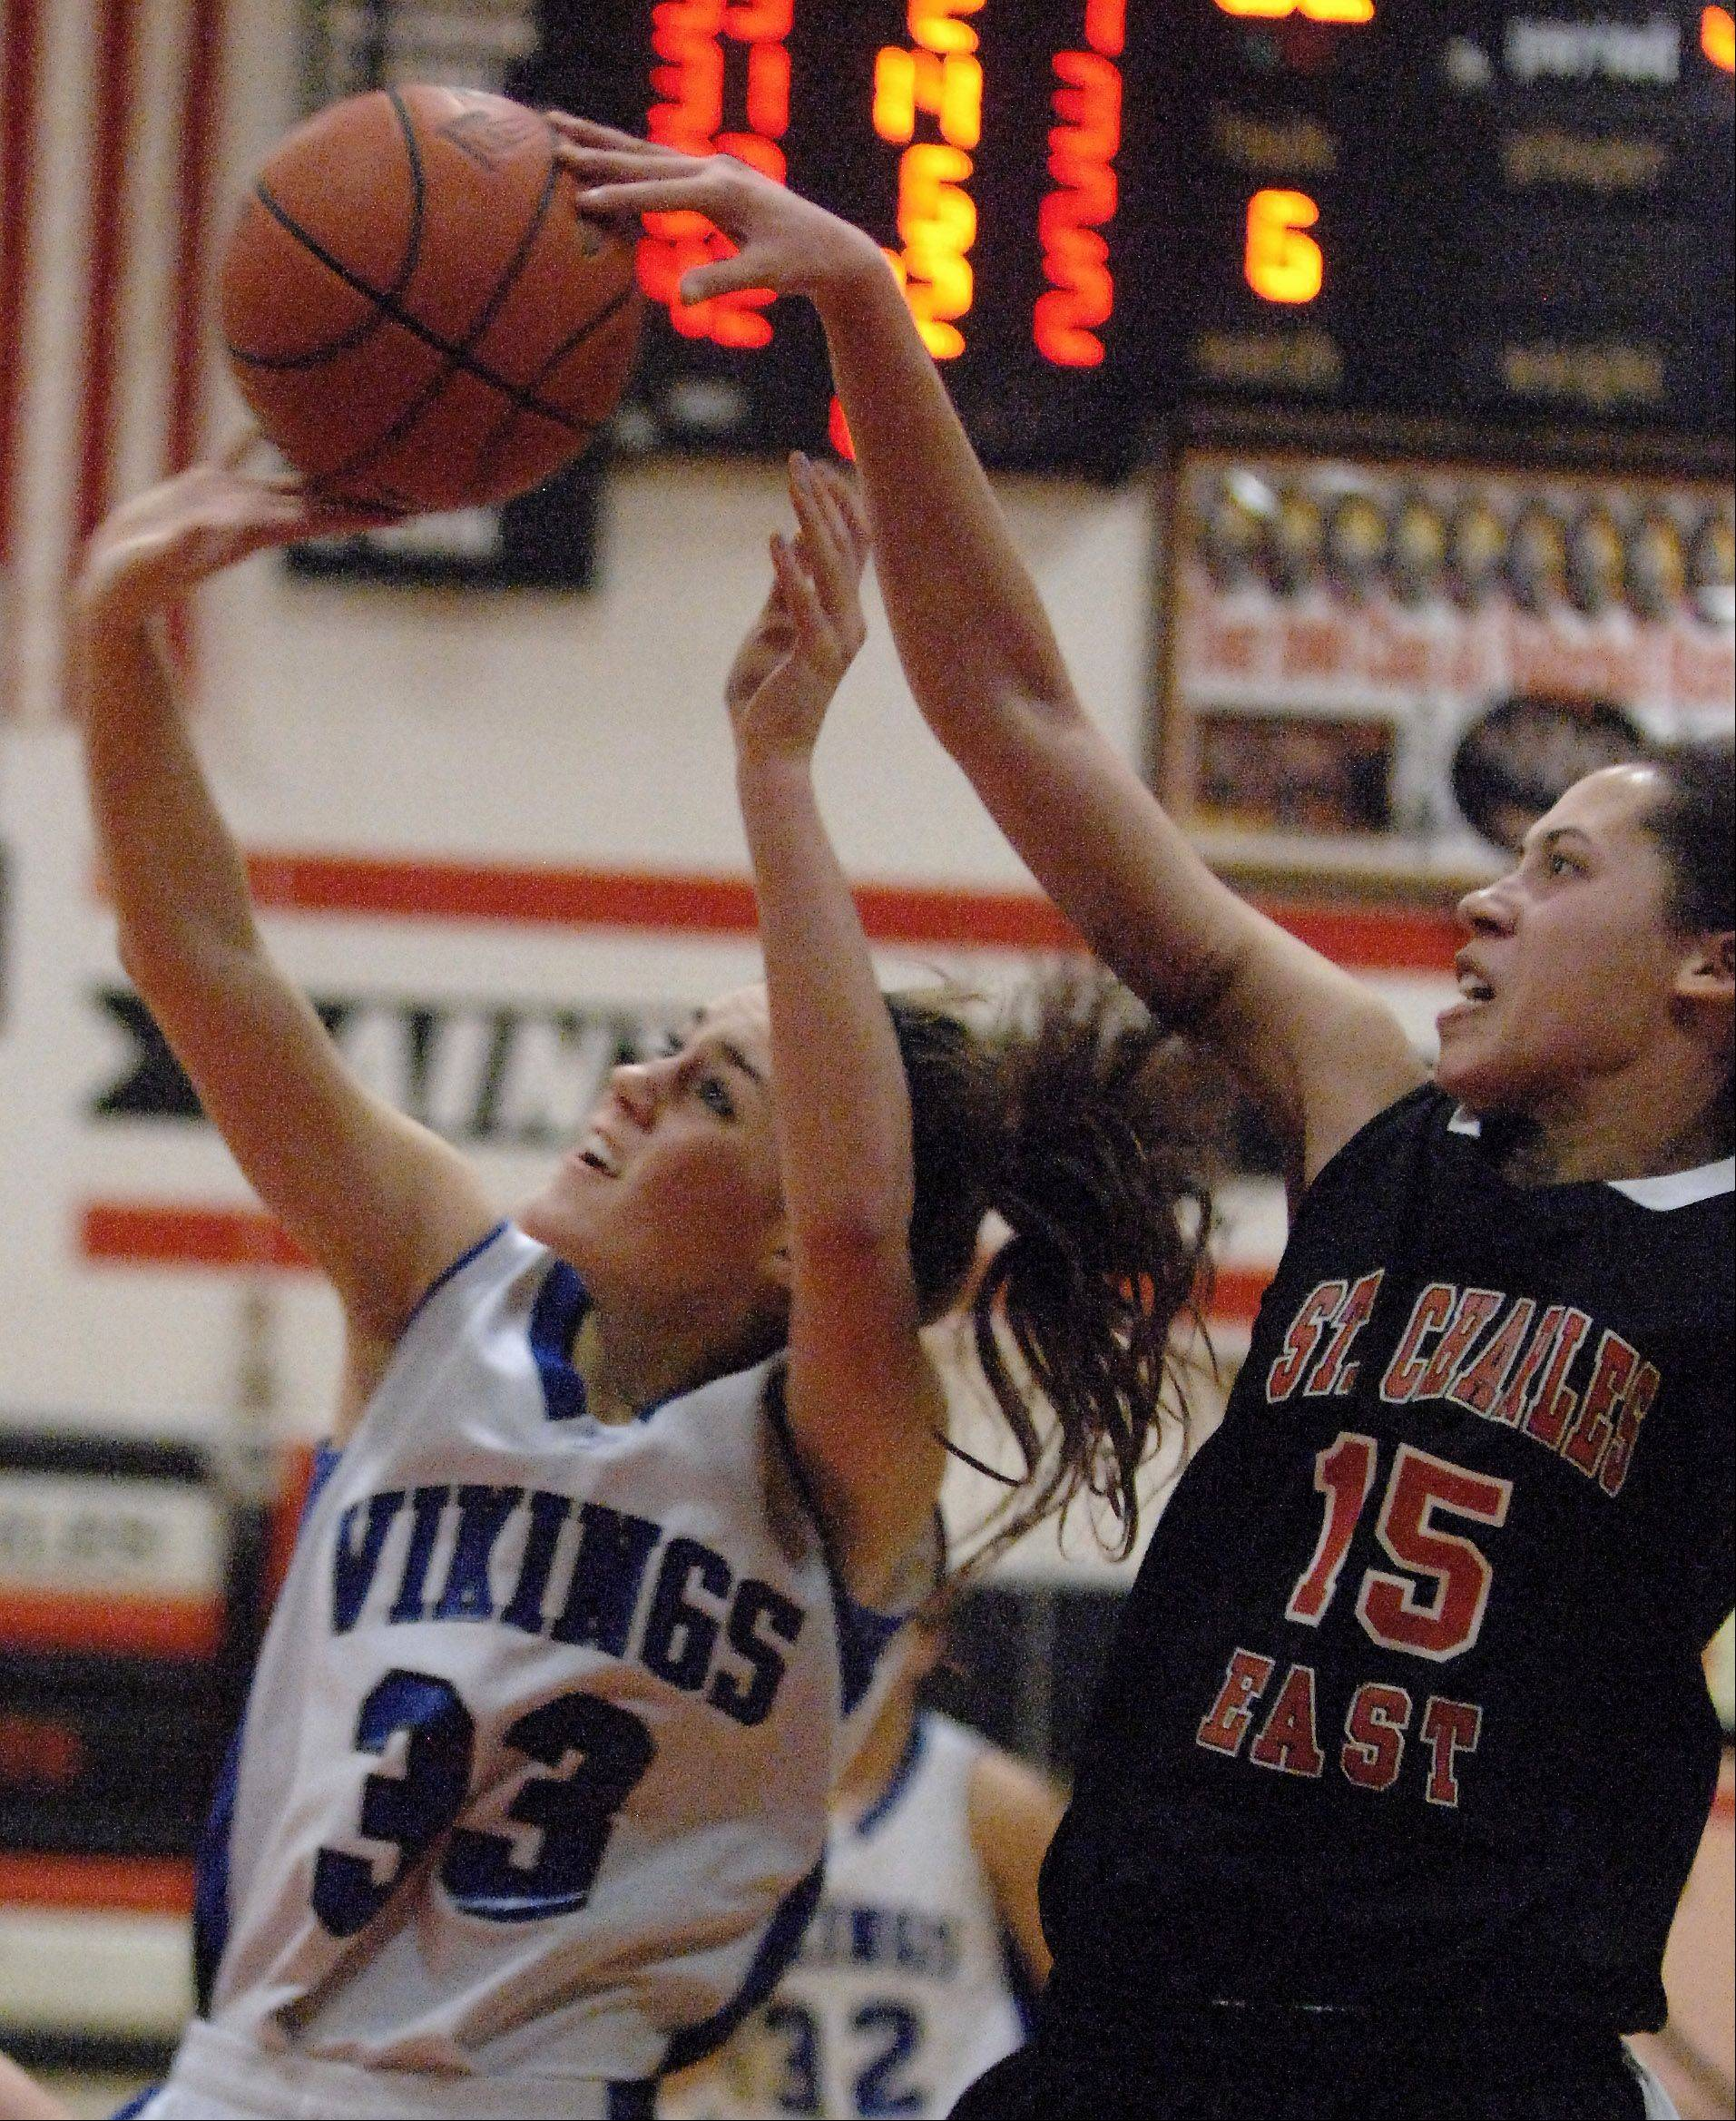 St. Charles East's Kyra Washington is called for a foul against Geneva's Madeline Dunn.